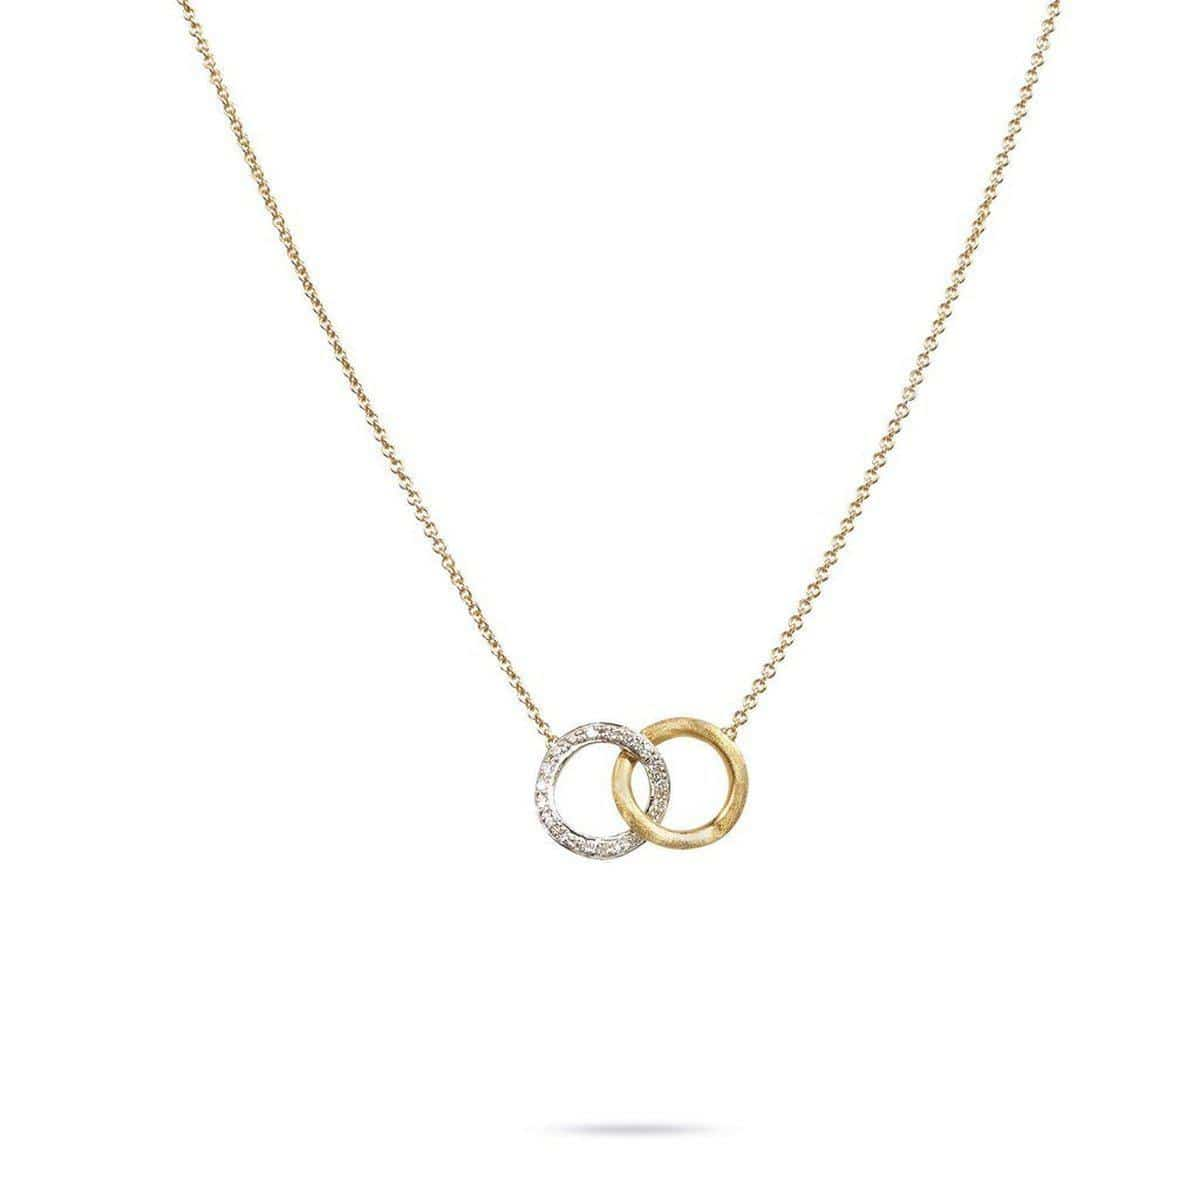 18K Delicati Necklace - CB1803 B YW